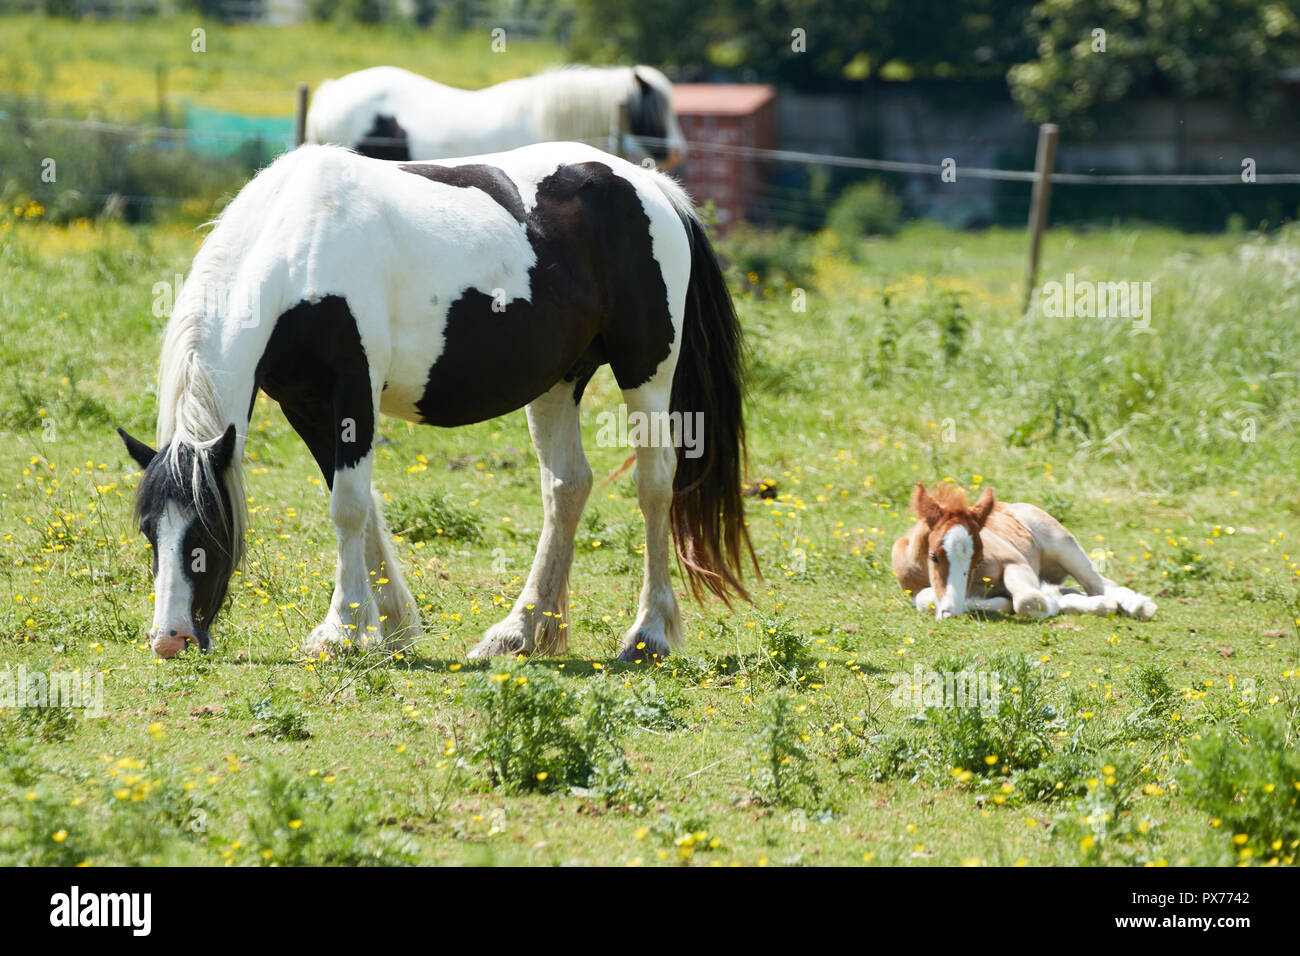 Mare and foal in paddock, Croydon, England, United Kingdom, - Stock Image